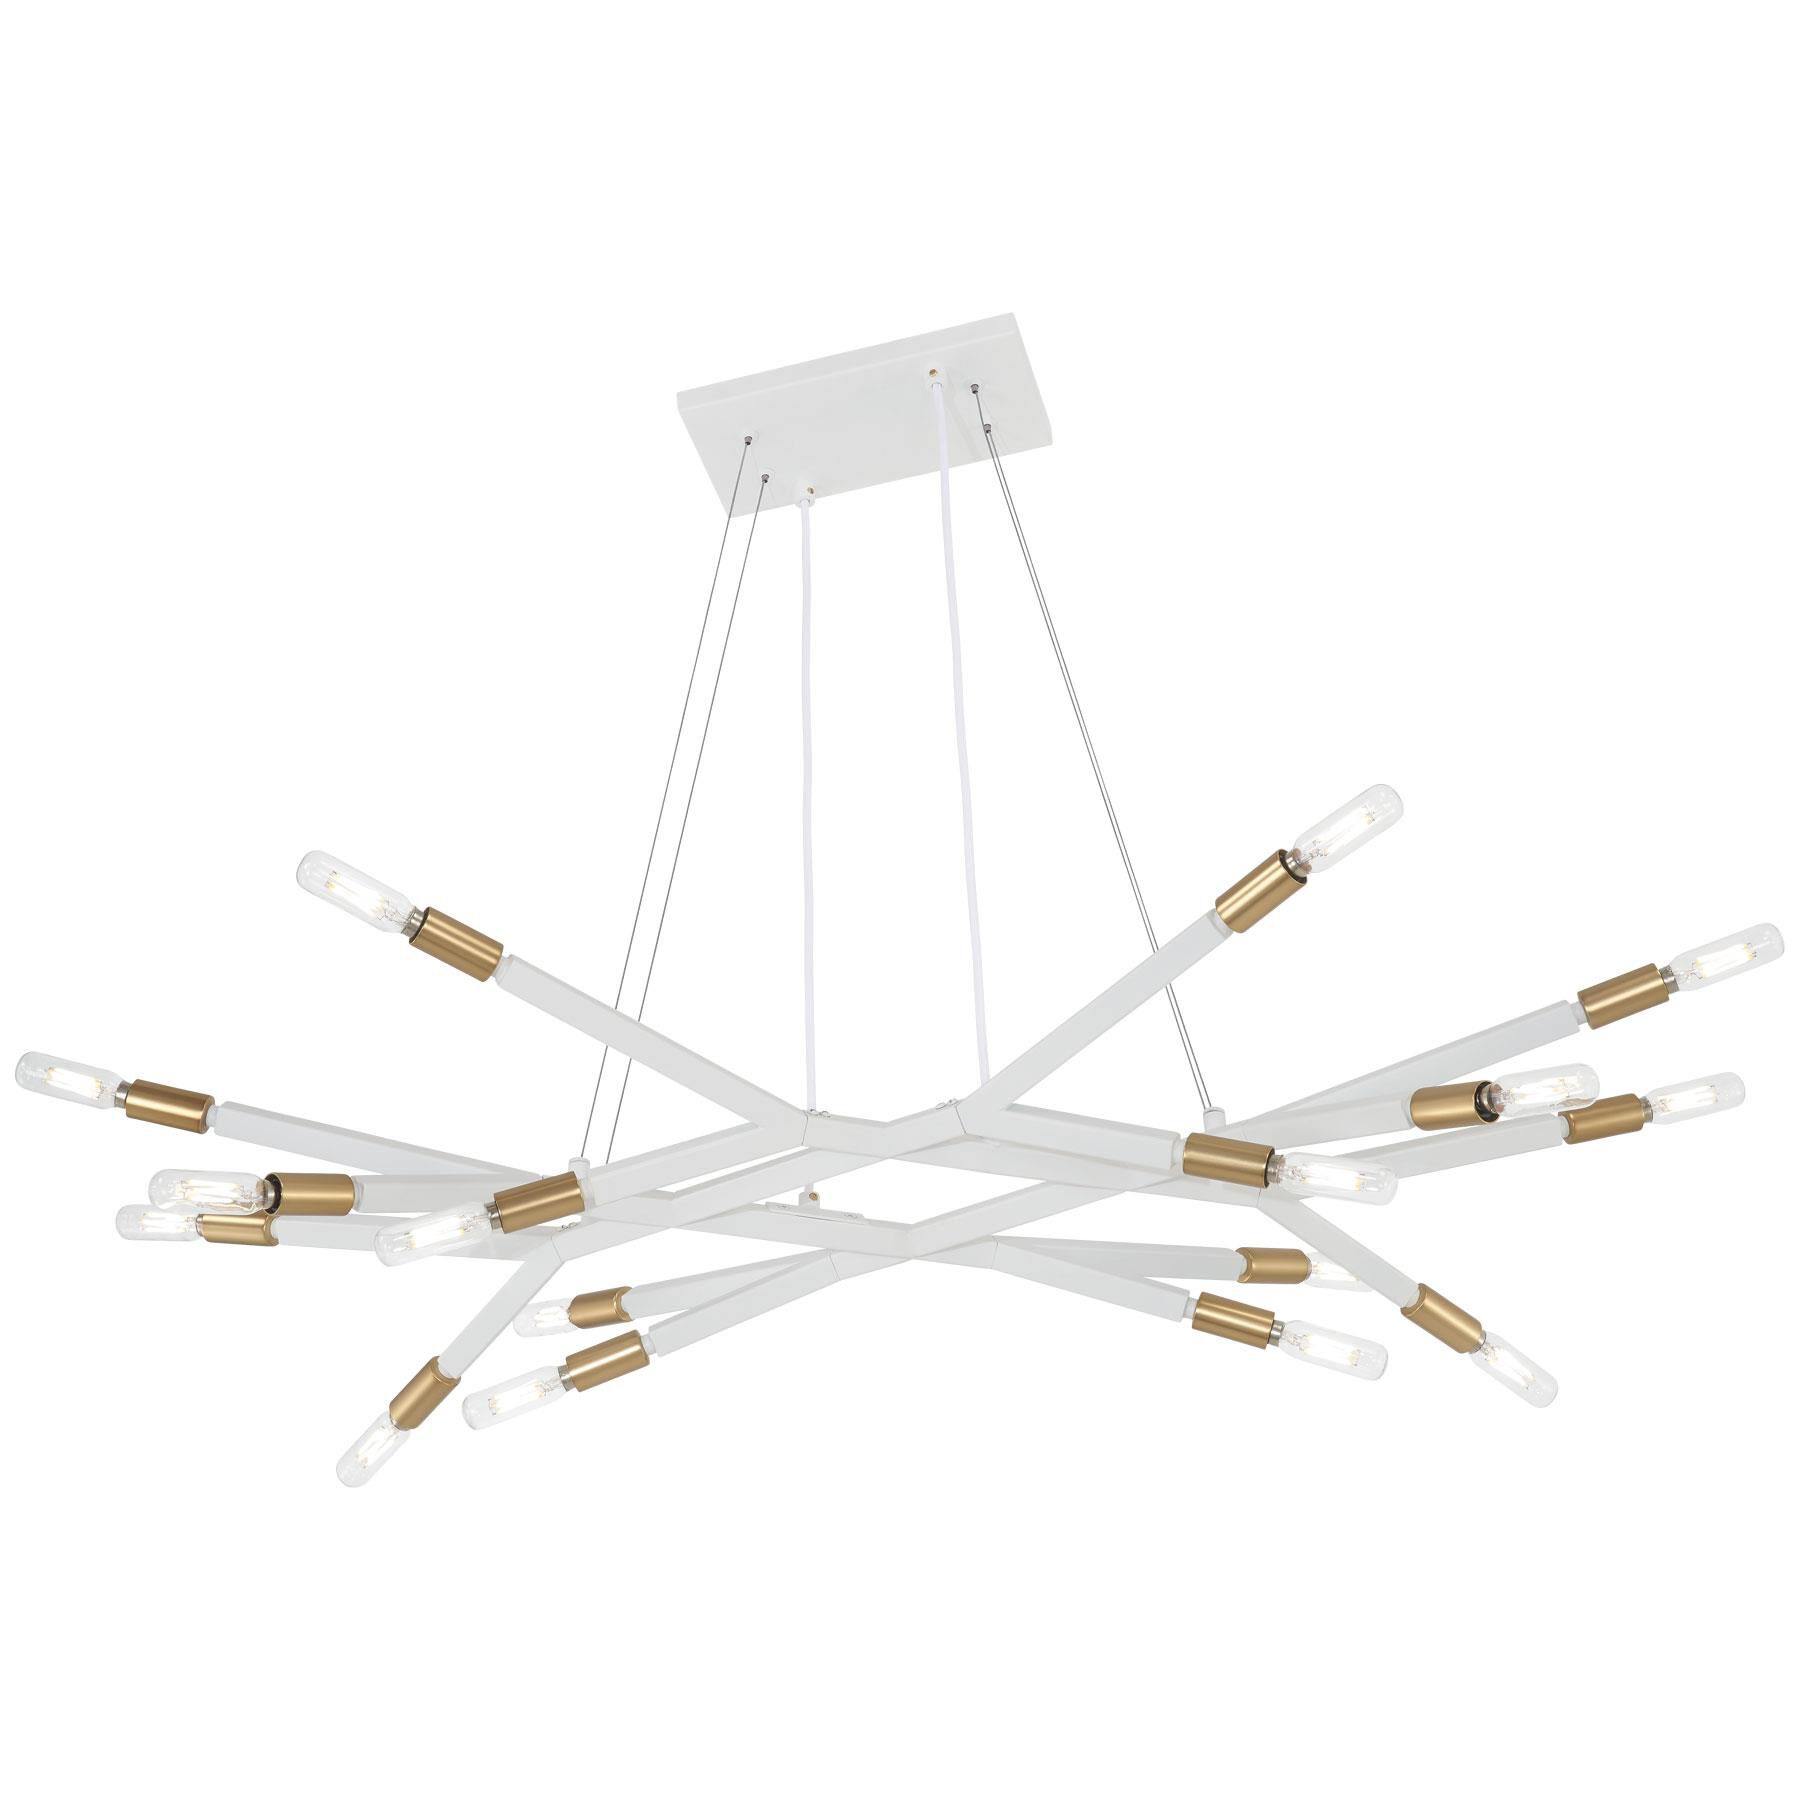 Kovacs Star Crossed 37 Inch 16 Light Linear Suspension Light Star Crossed - P1785-722 - Modern Contemporary